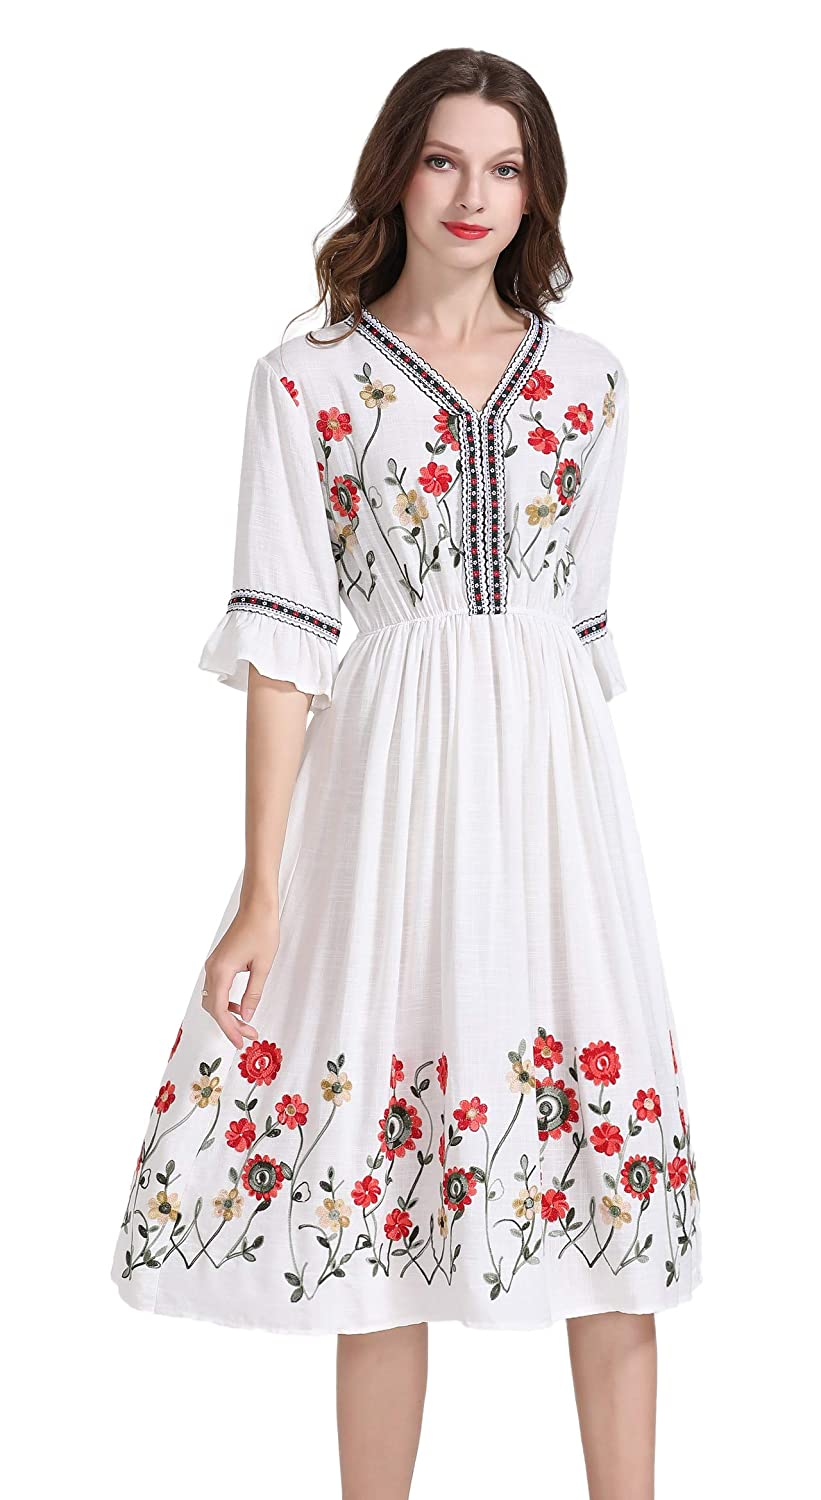 1920s Wedding Dresses- Art Deco Wedding Dress, Gatsby Wedding Dress Womens Short Sleeve Mexican Embroidered Floral Pleated Midi A-line Cocktail Dress $26.99 AT vintagedancer.com